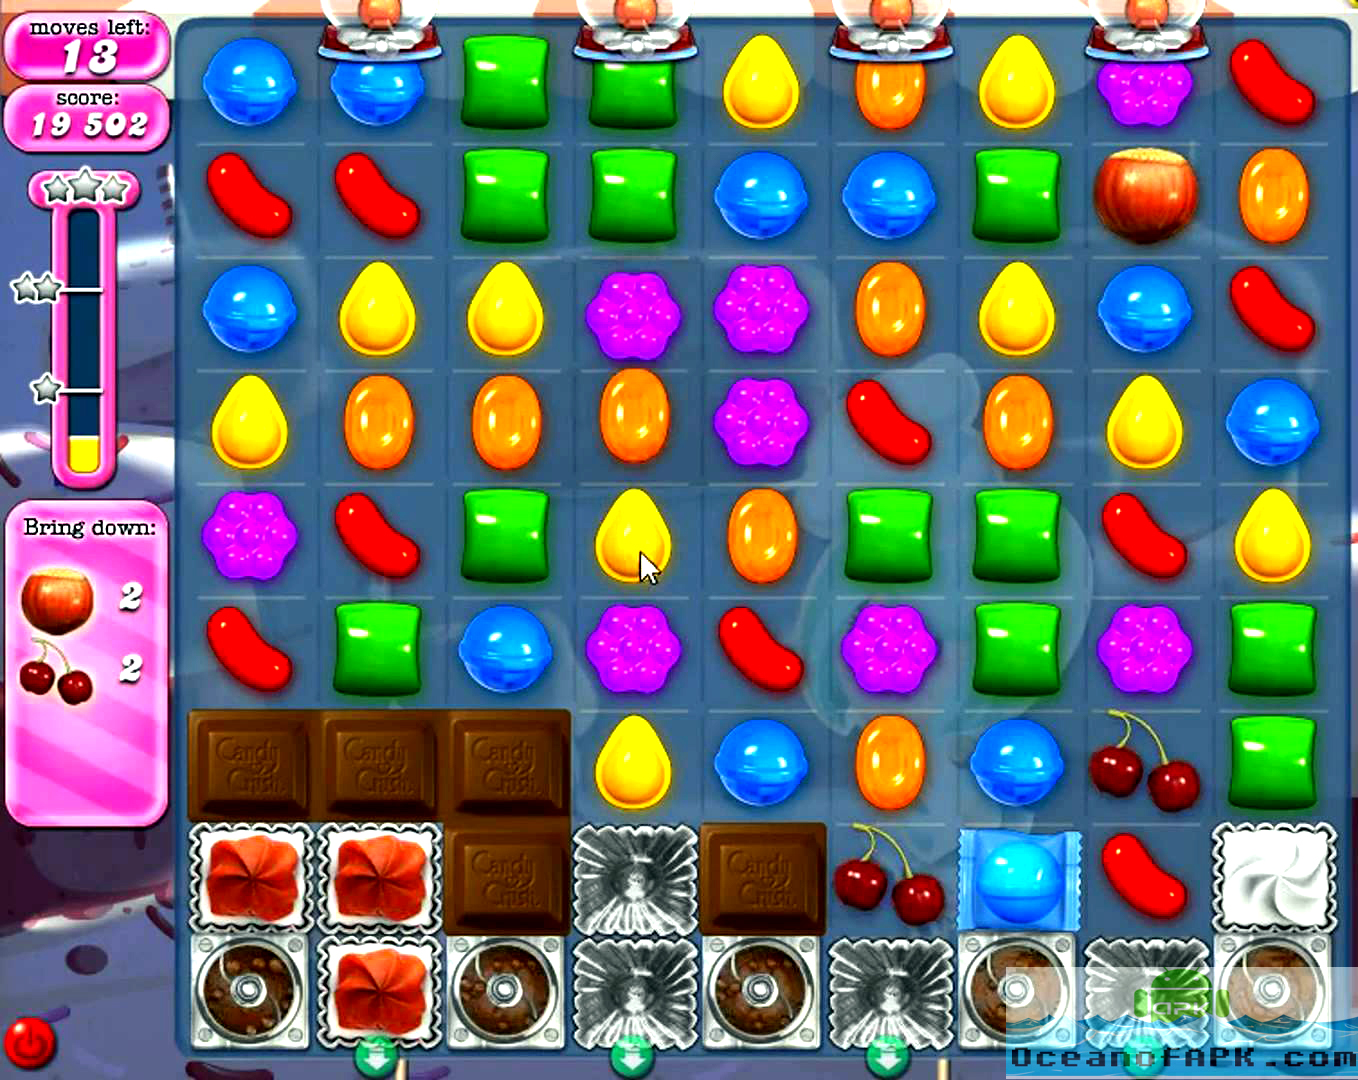 Candy Crush Saga Unlimited Life 150 Moves APK Features